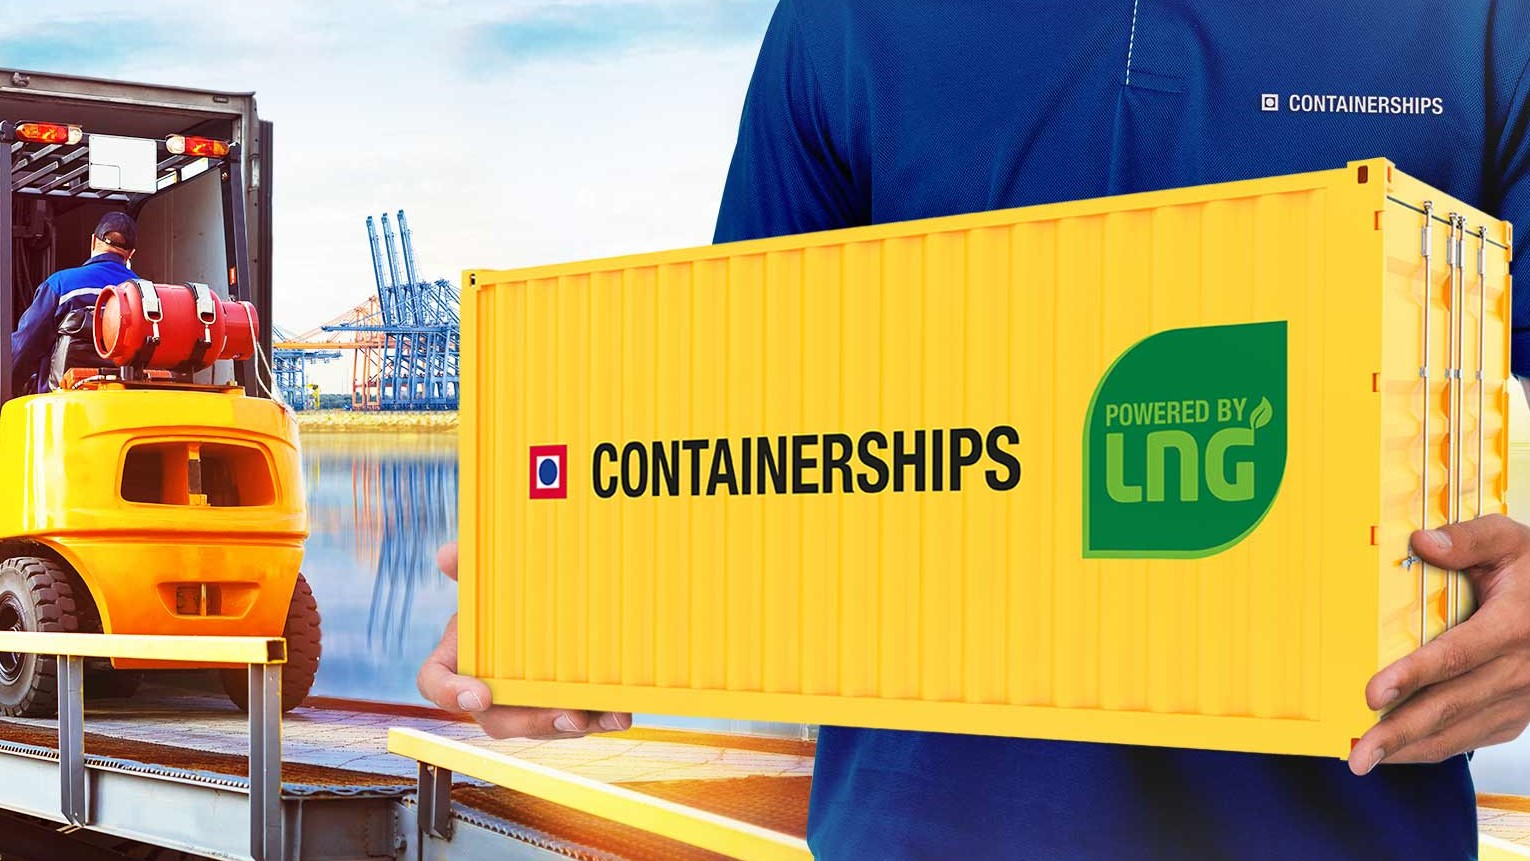 CMA CGM rebranding Containerships and MacAndrews under the Containerships brand. 1